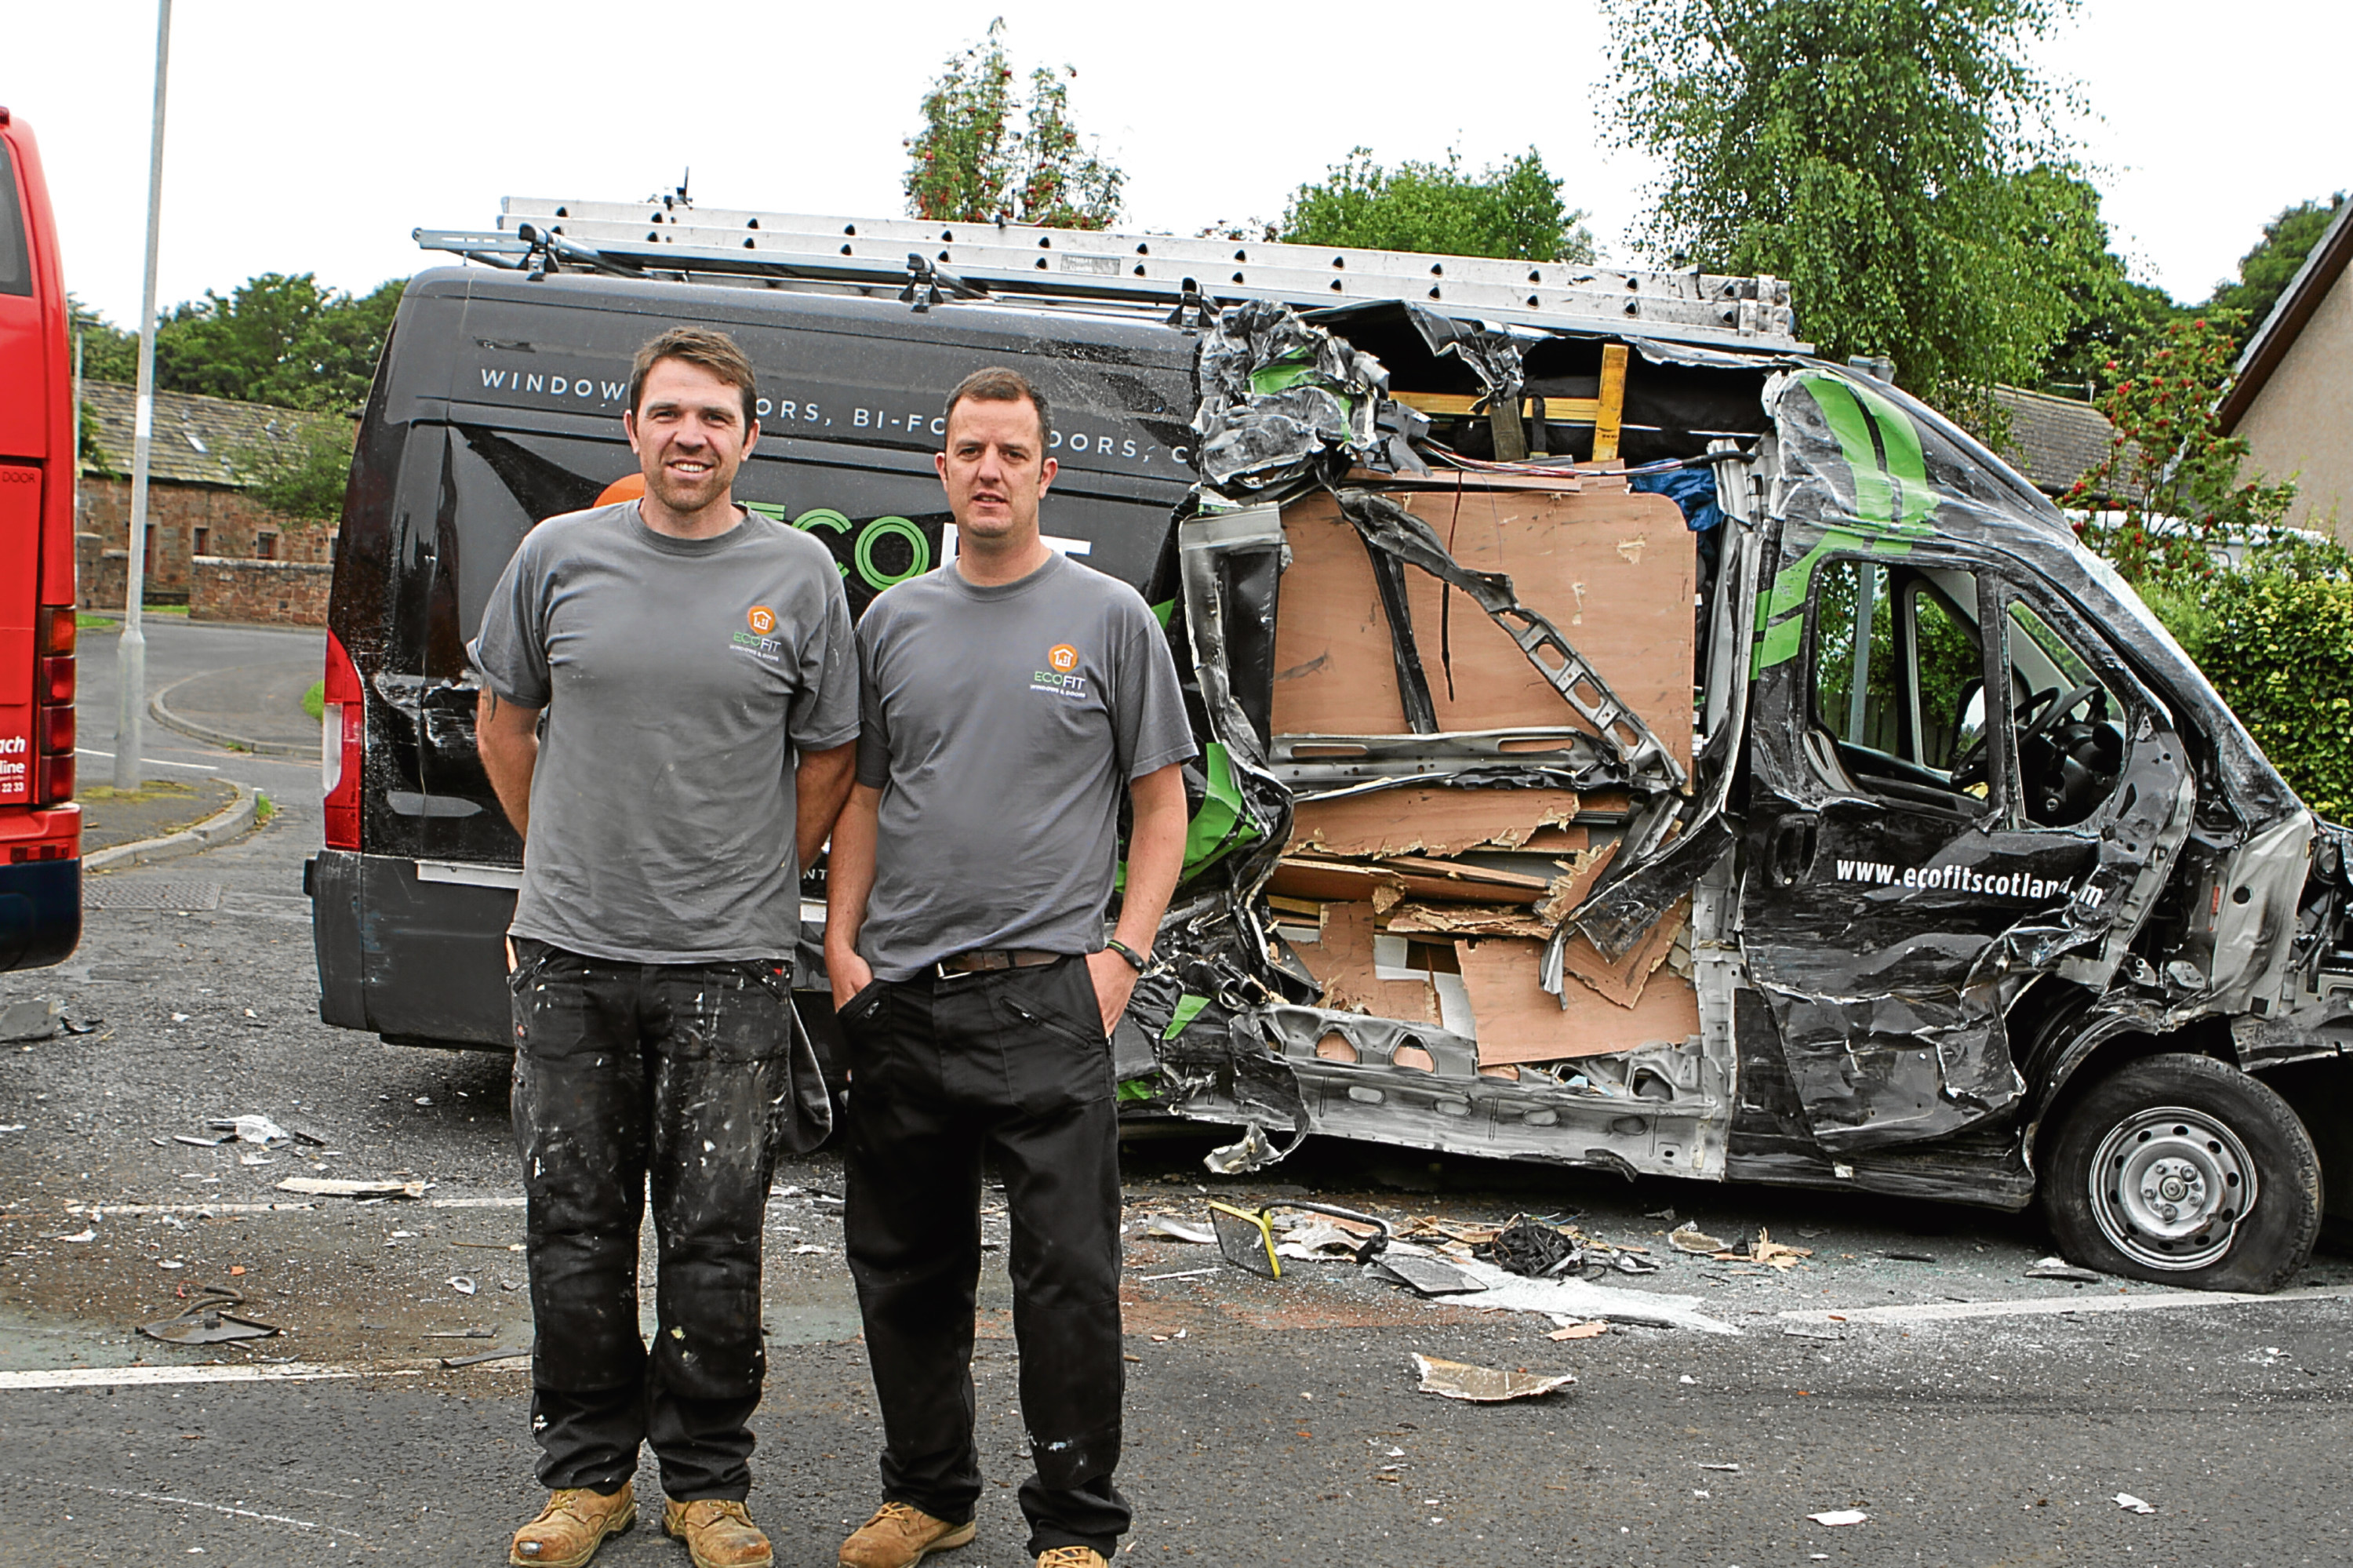 Garry Myles and Paul Reid stand in front of the damaged van.